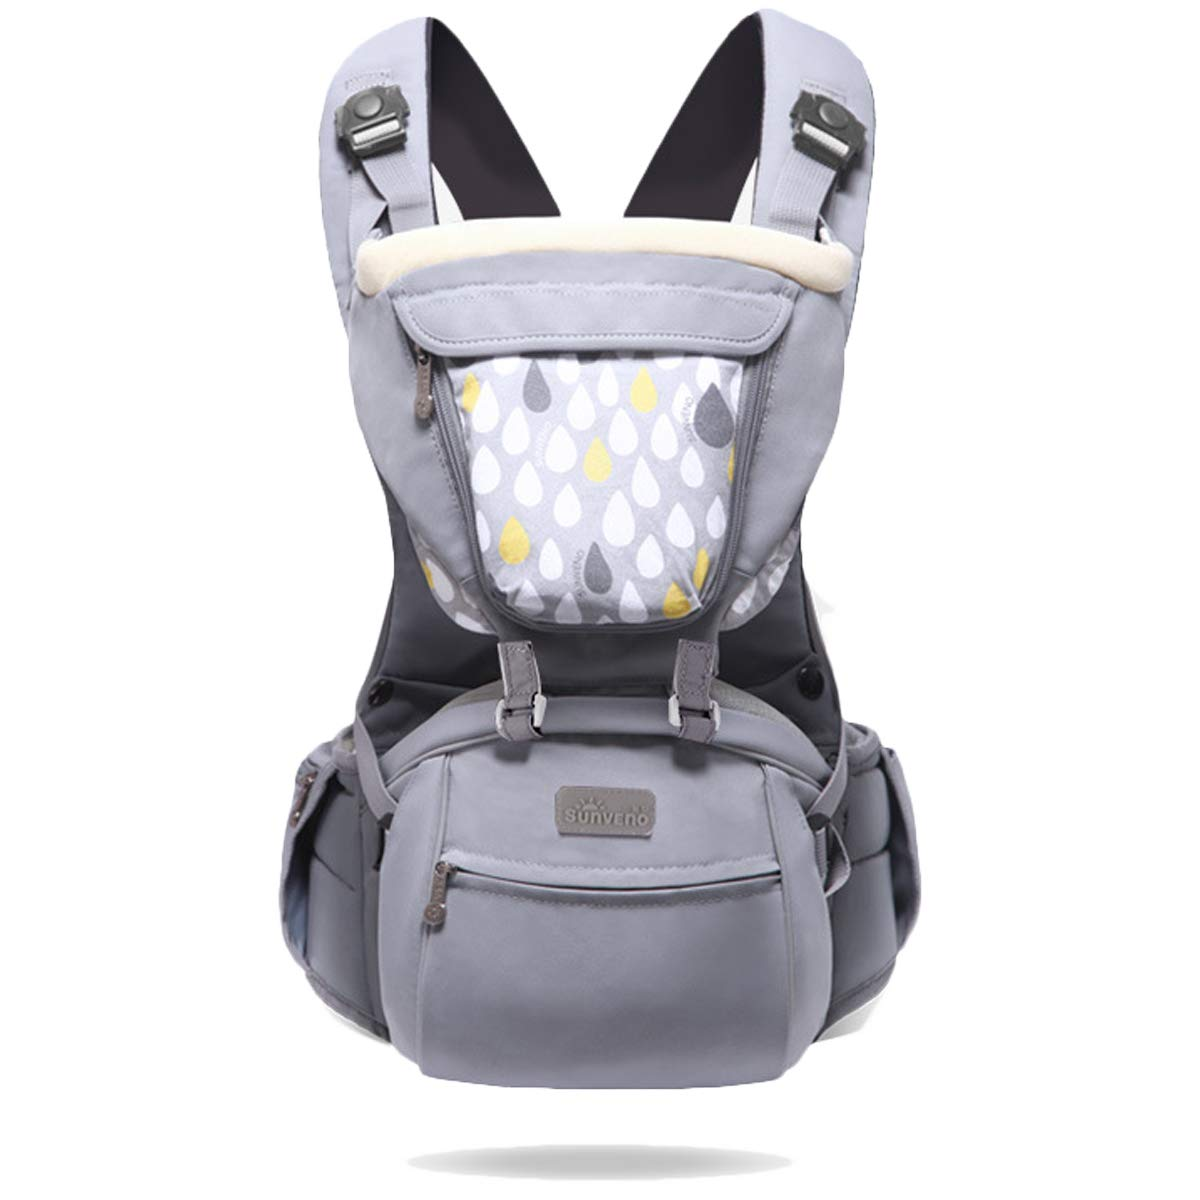 SUNVENO Baby Soft Carrier, 3-in 1 Ergonomic Hip Seat Carrier Waist Stool Perfect for Hiking Shopping Travelling, All Season, 8-35 lbs(Gray)